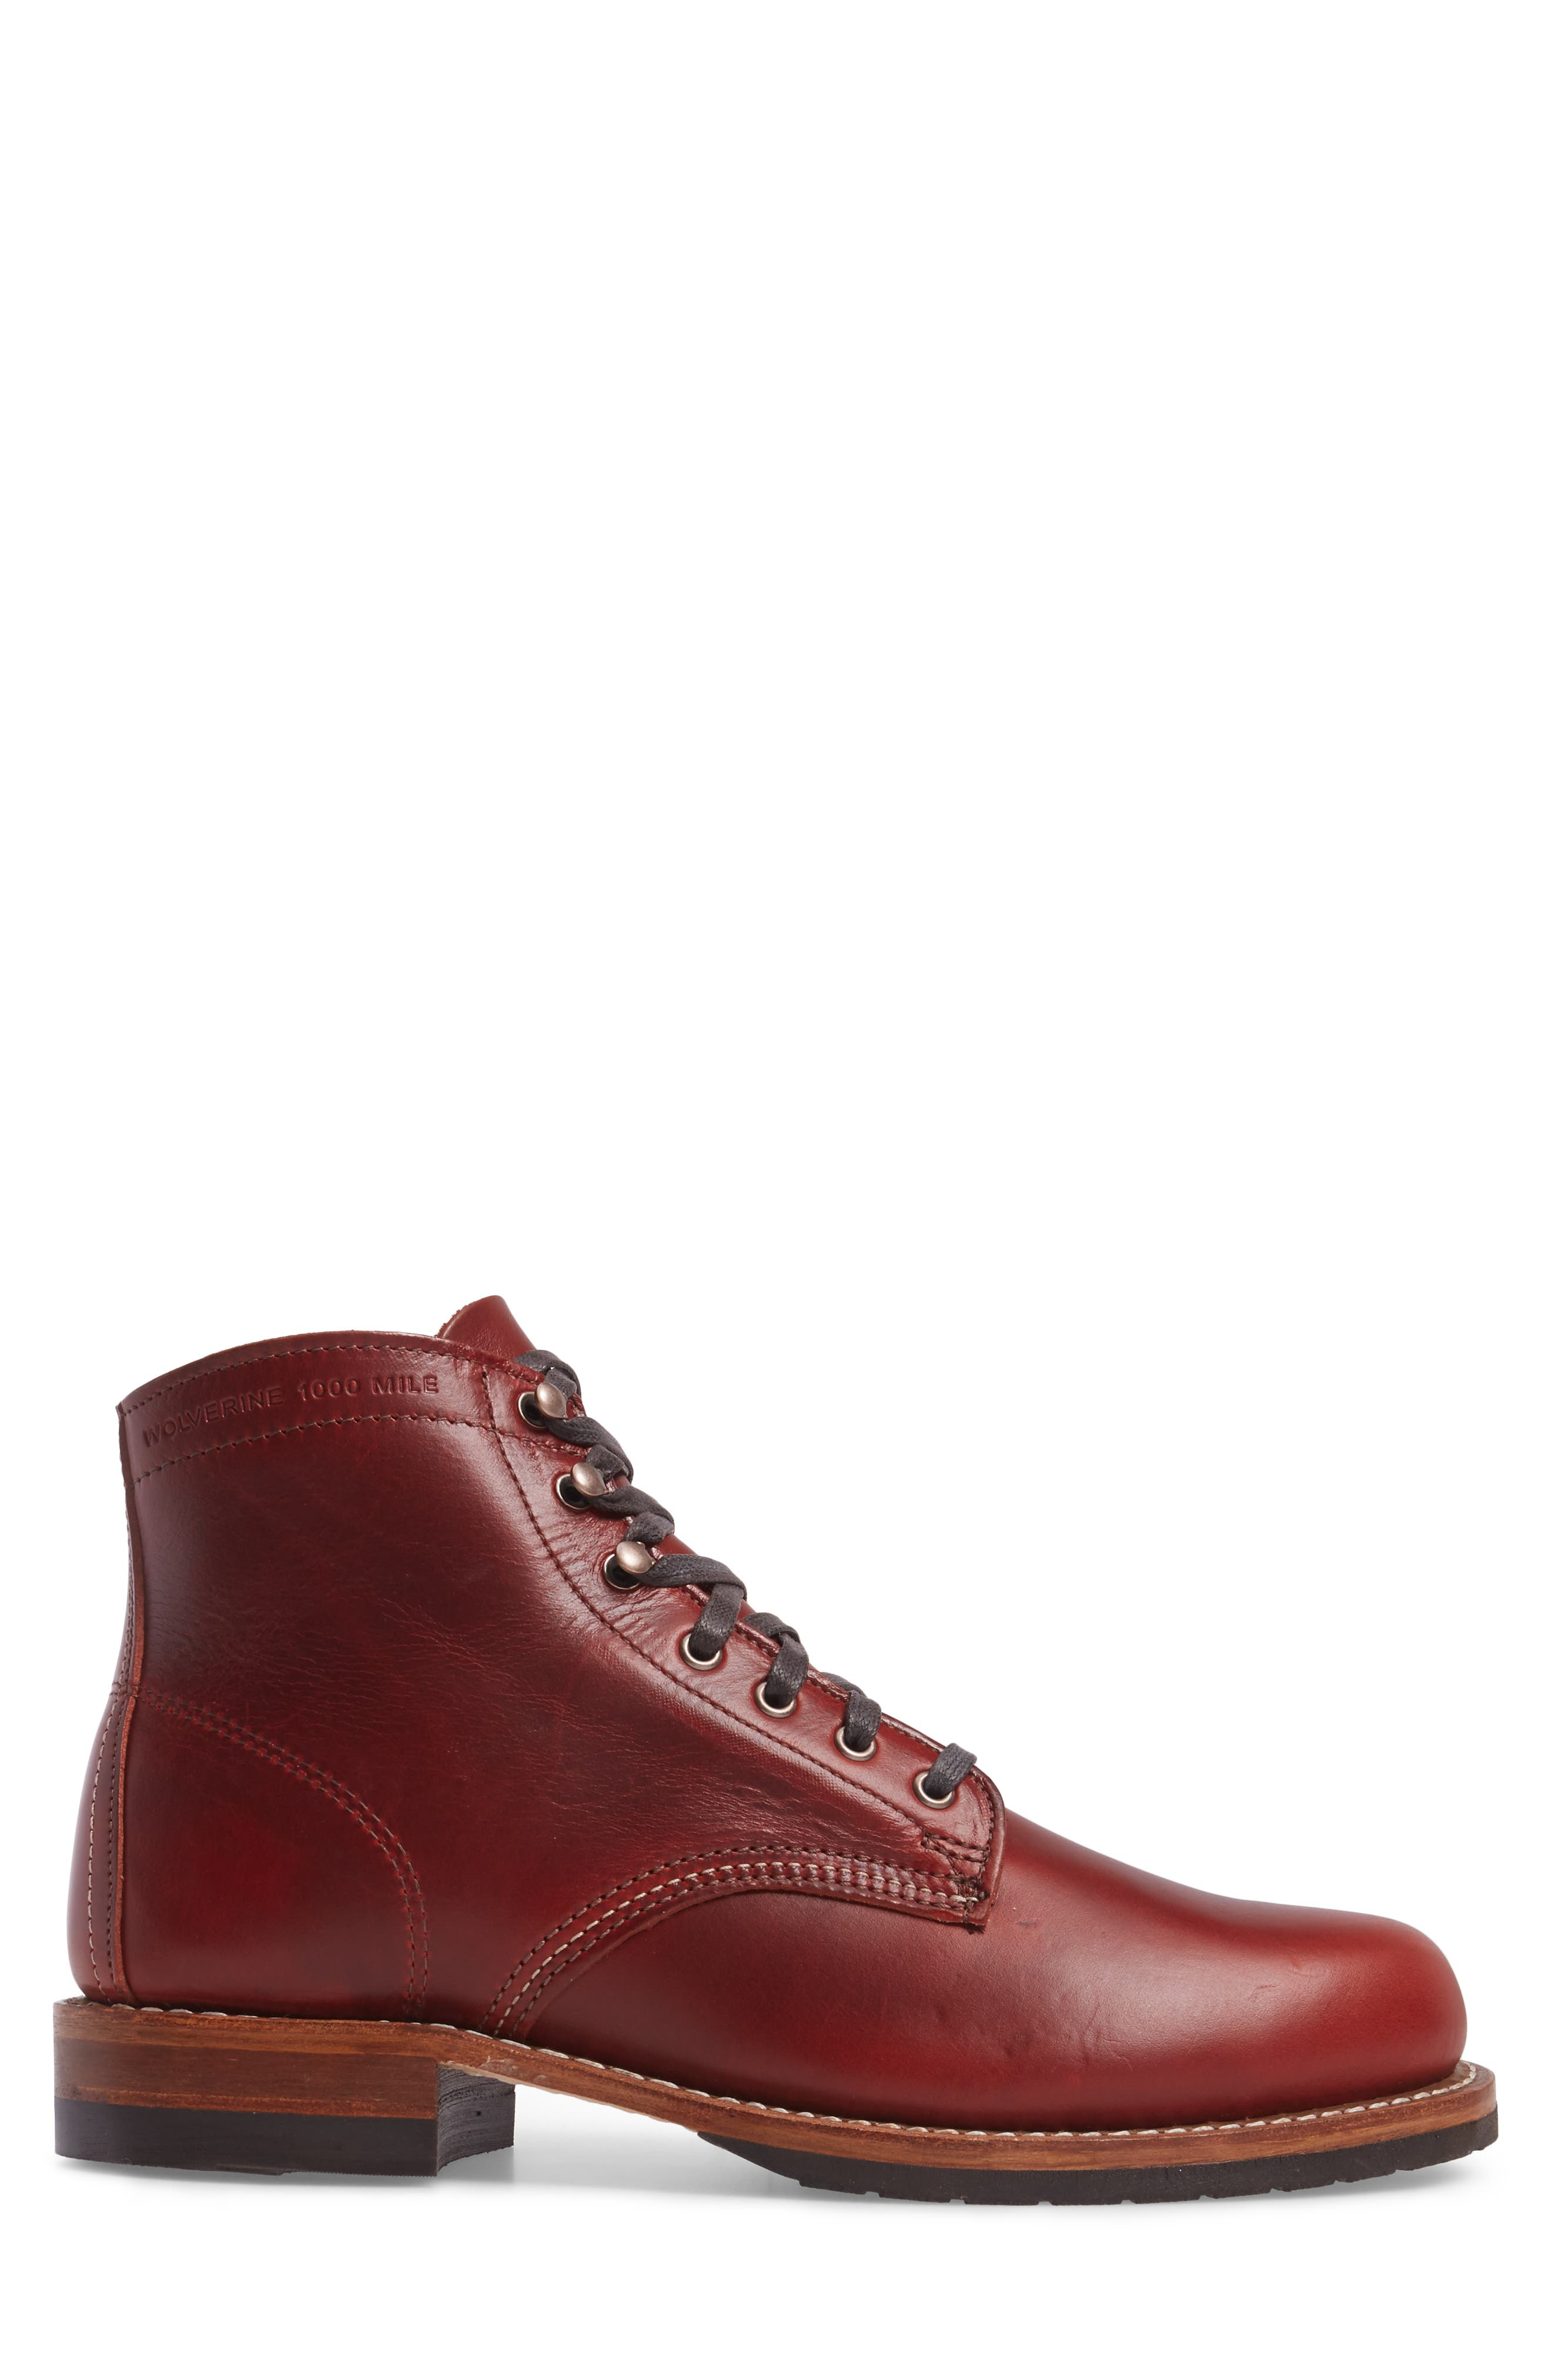 Evans Plain Toe Boot,                             Alternate thumbnail 3, color,                             Red Leather